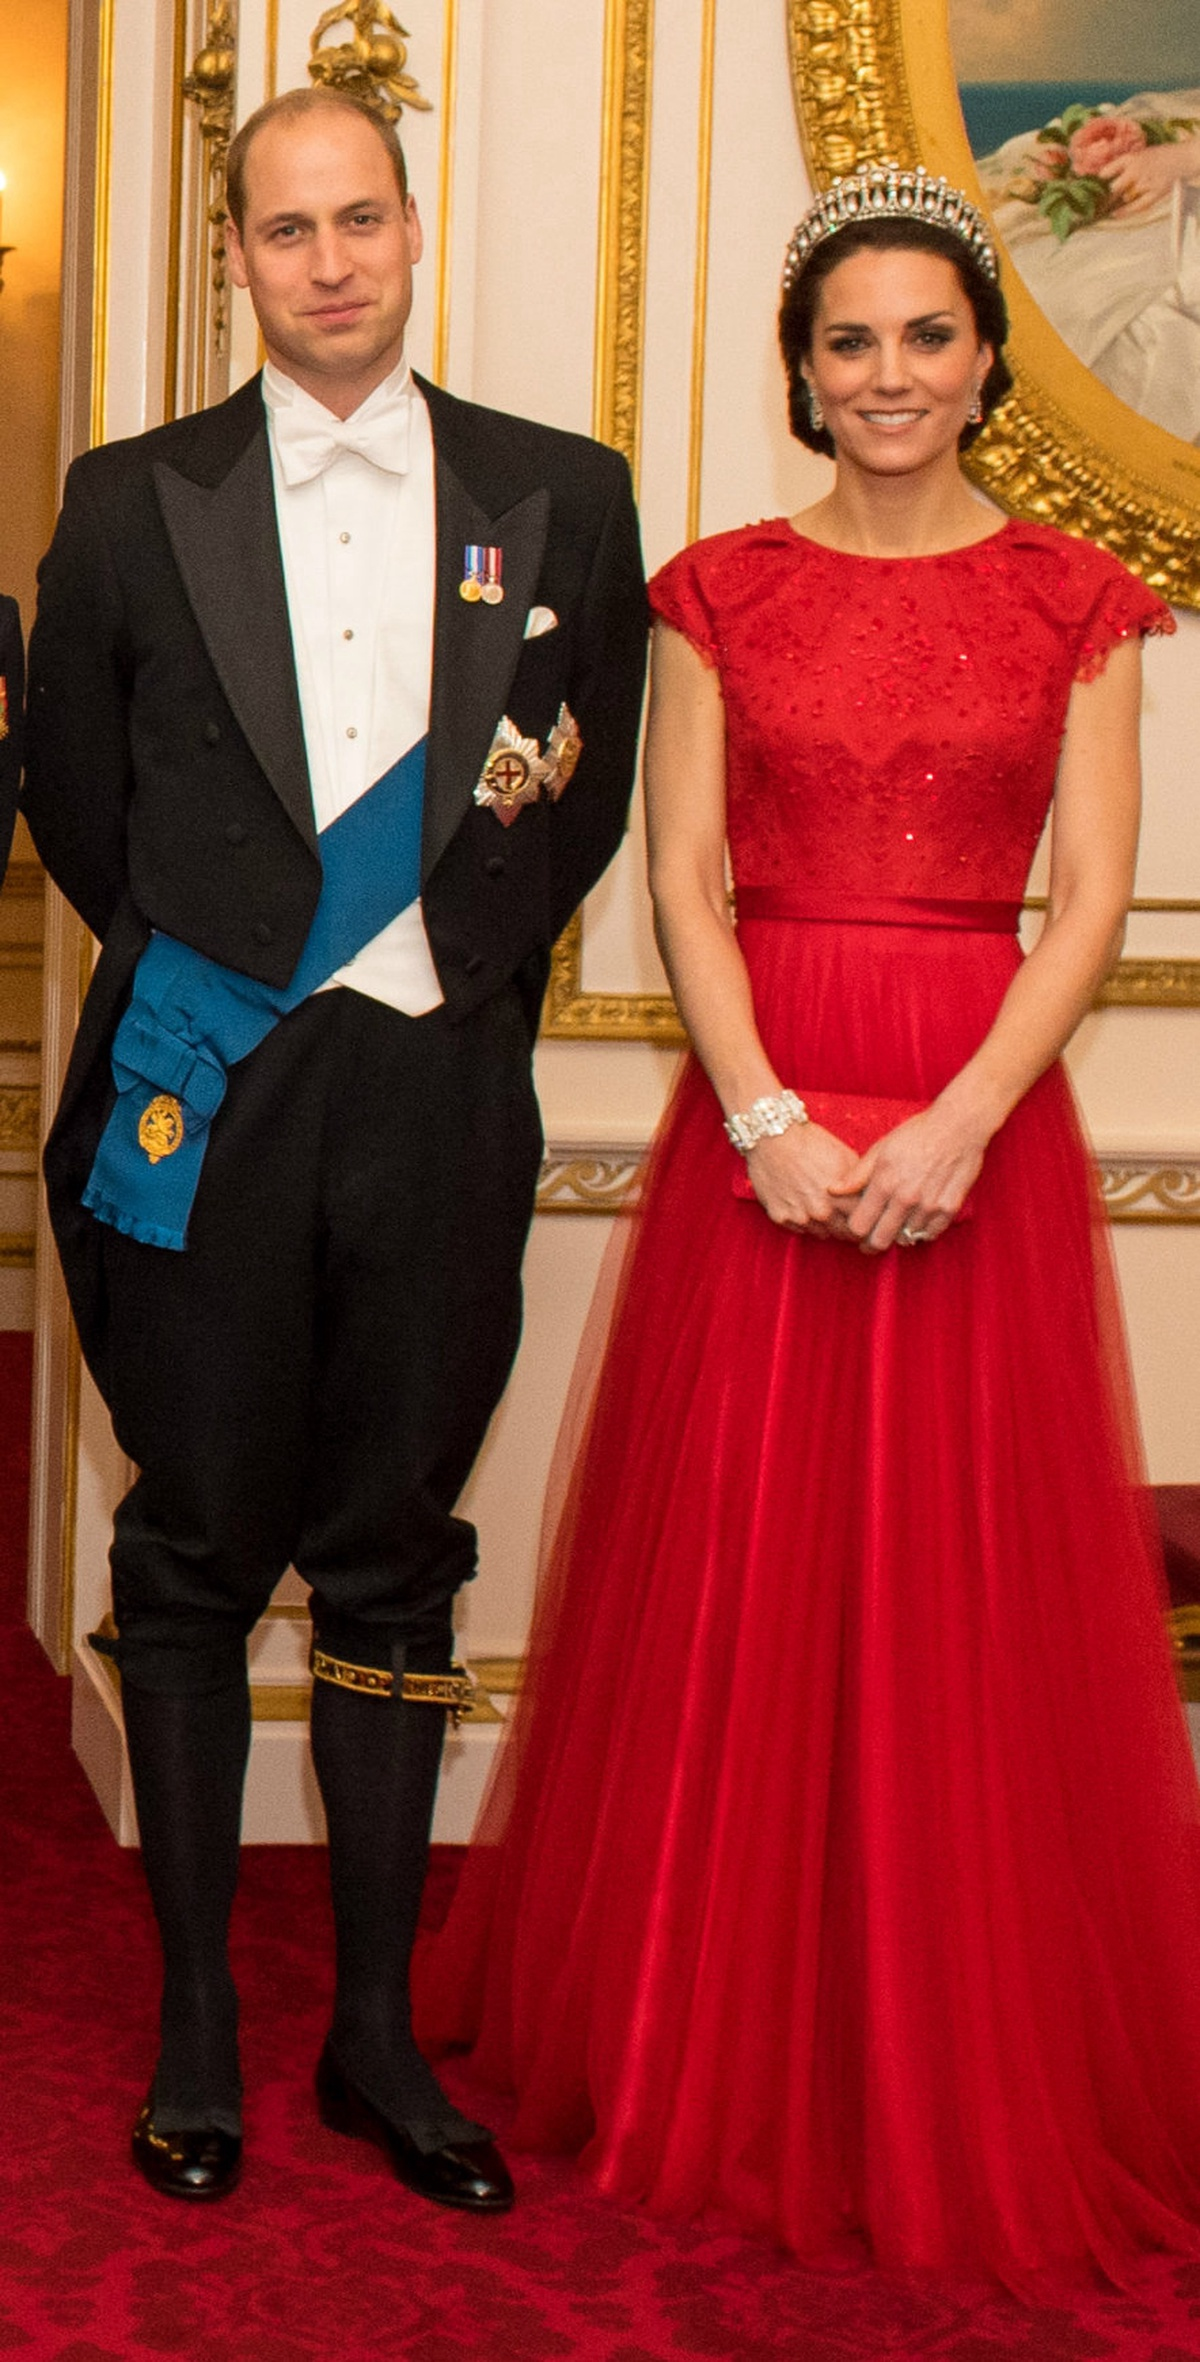 Príncipe William y Kate Middlenton, Duquesa de Cambridge